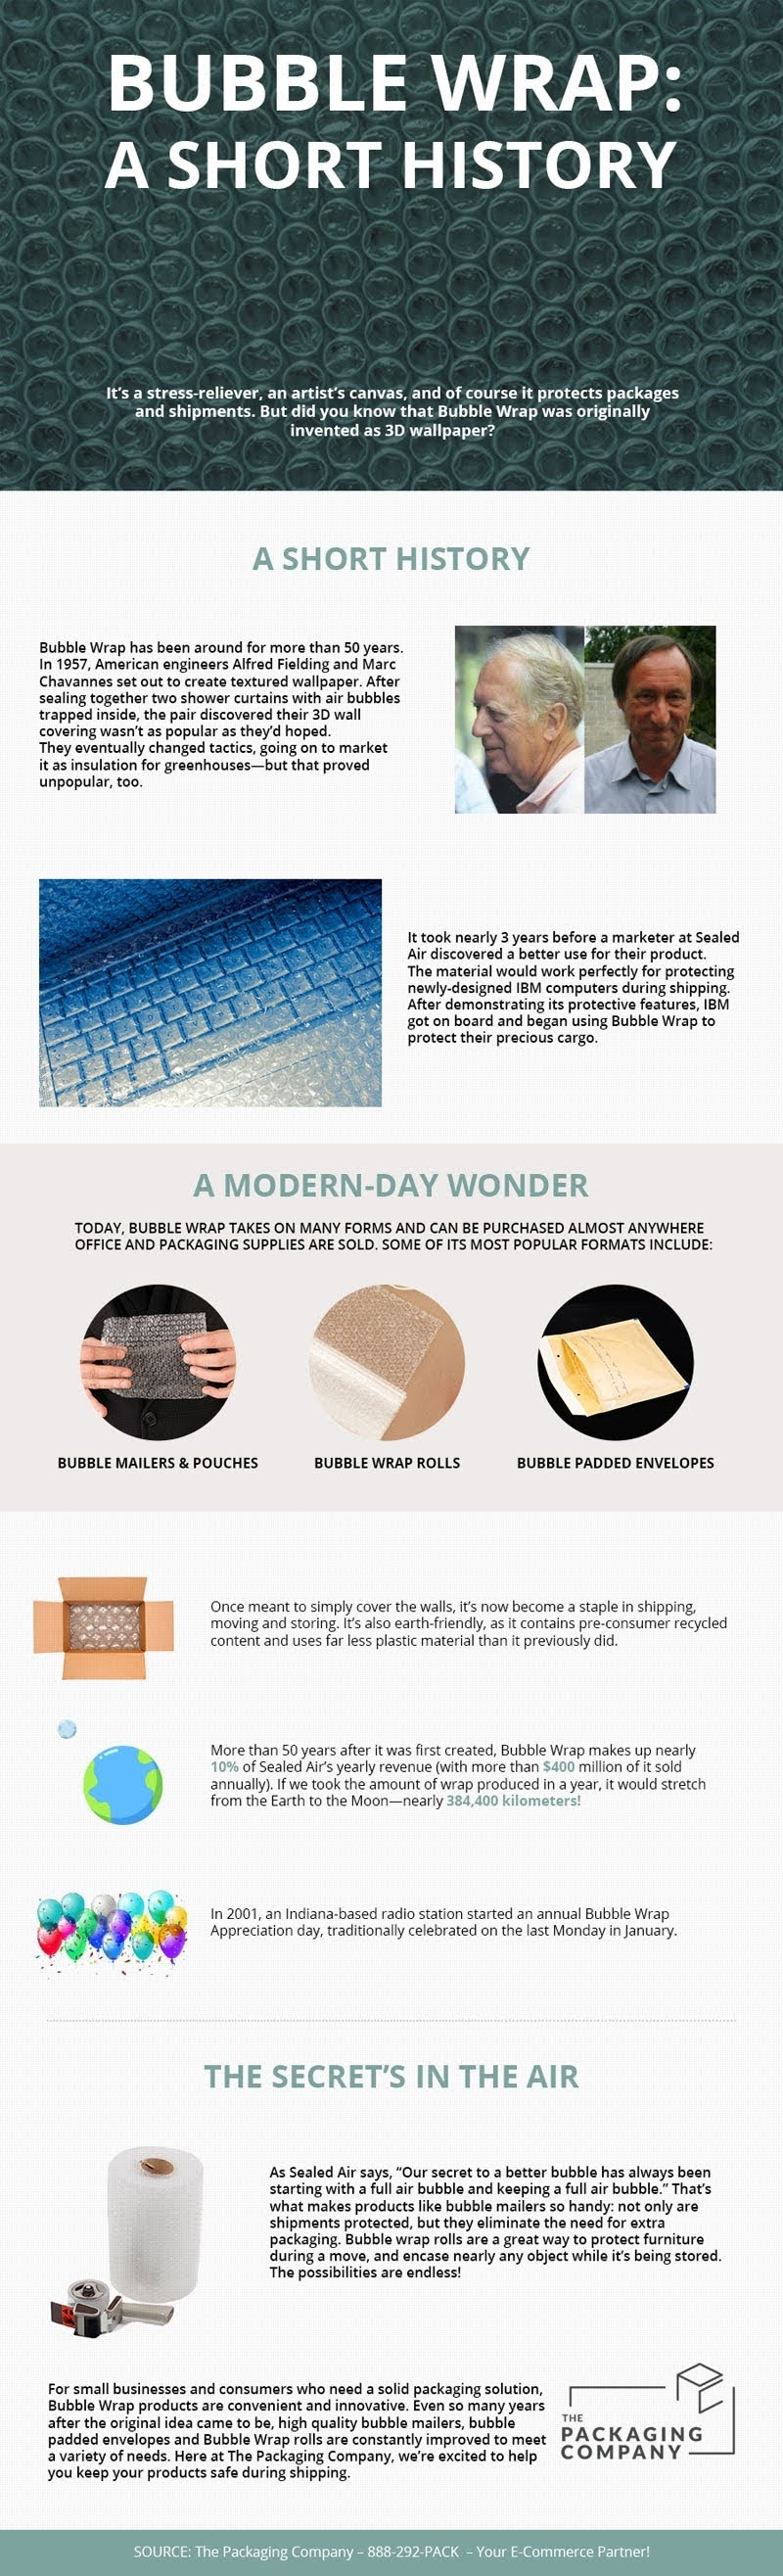 Bubble Wrap: A Short History #infographic